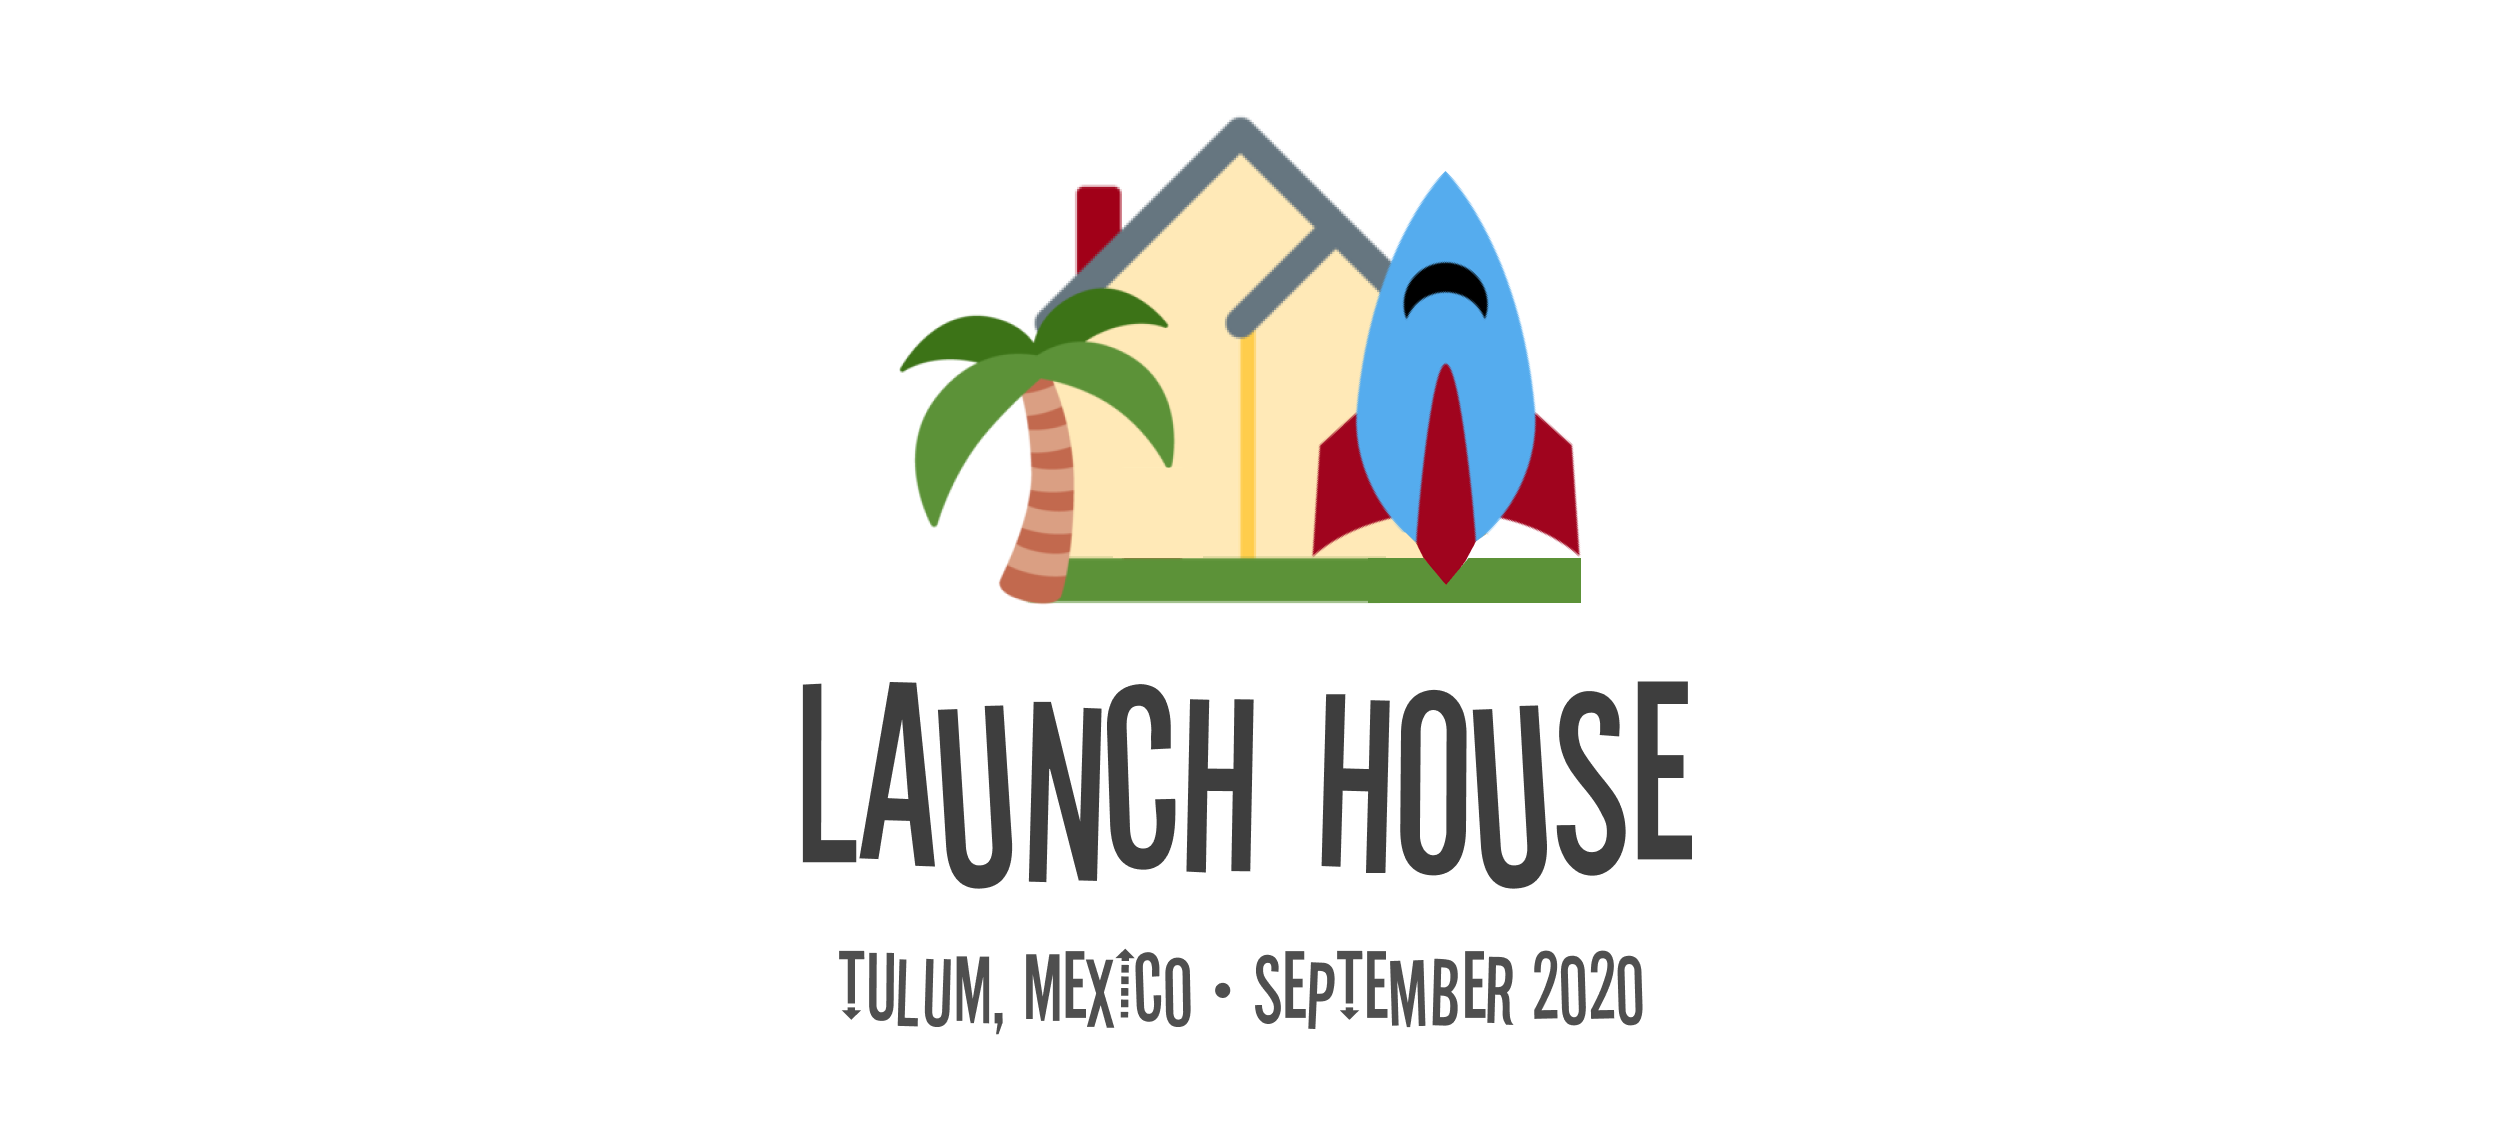 Launch House